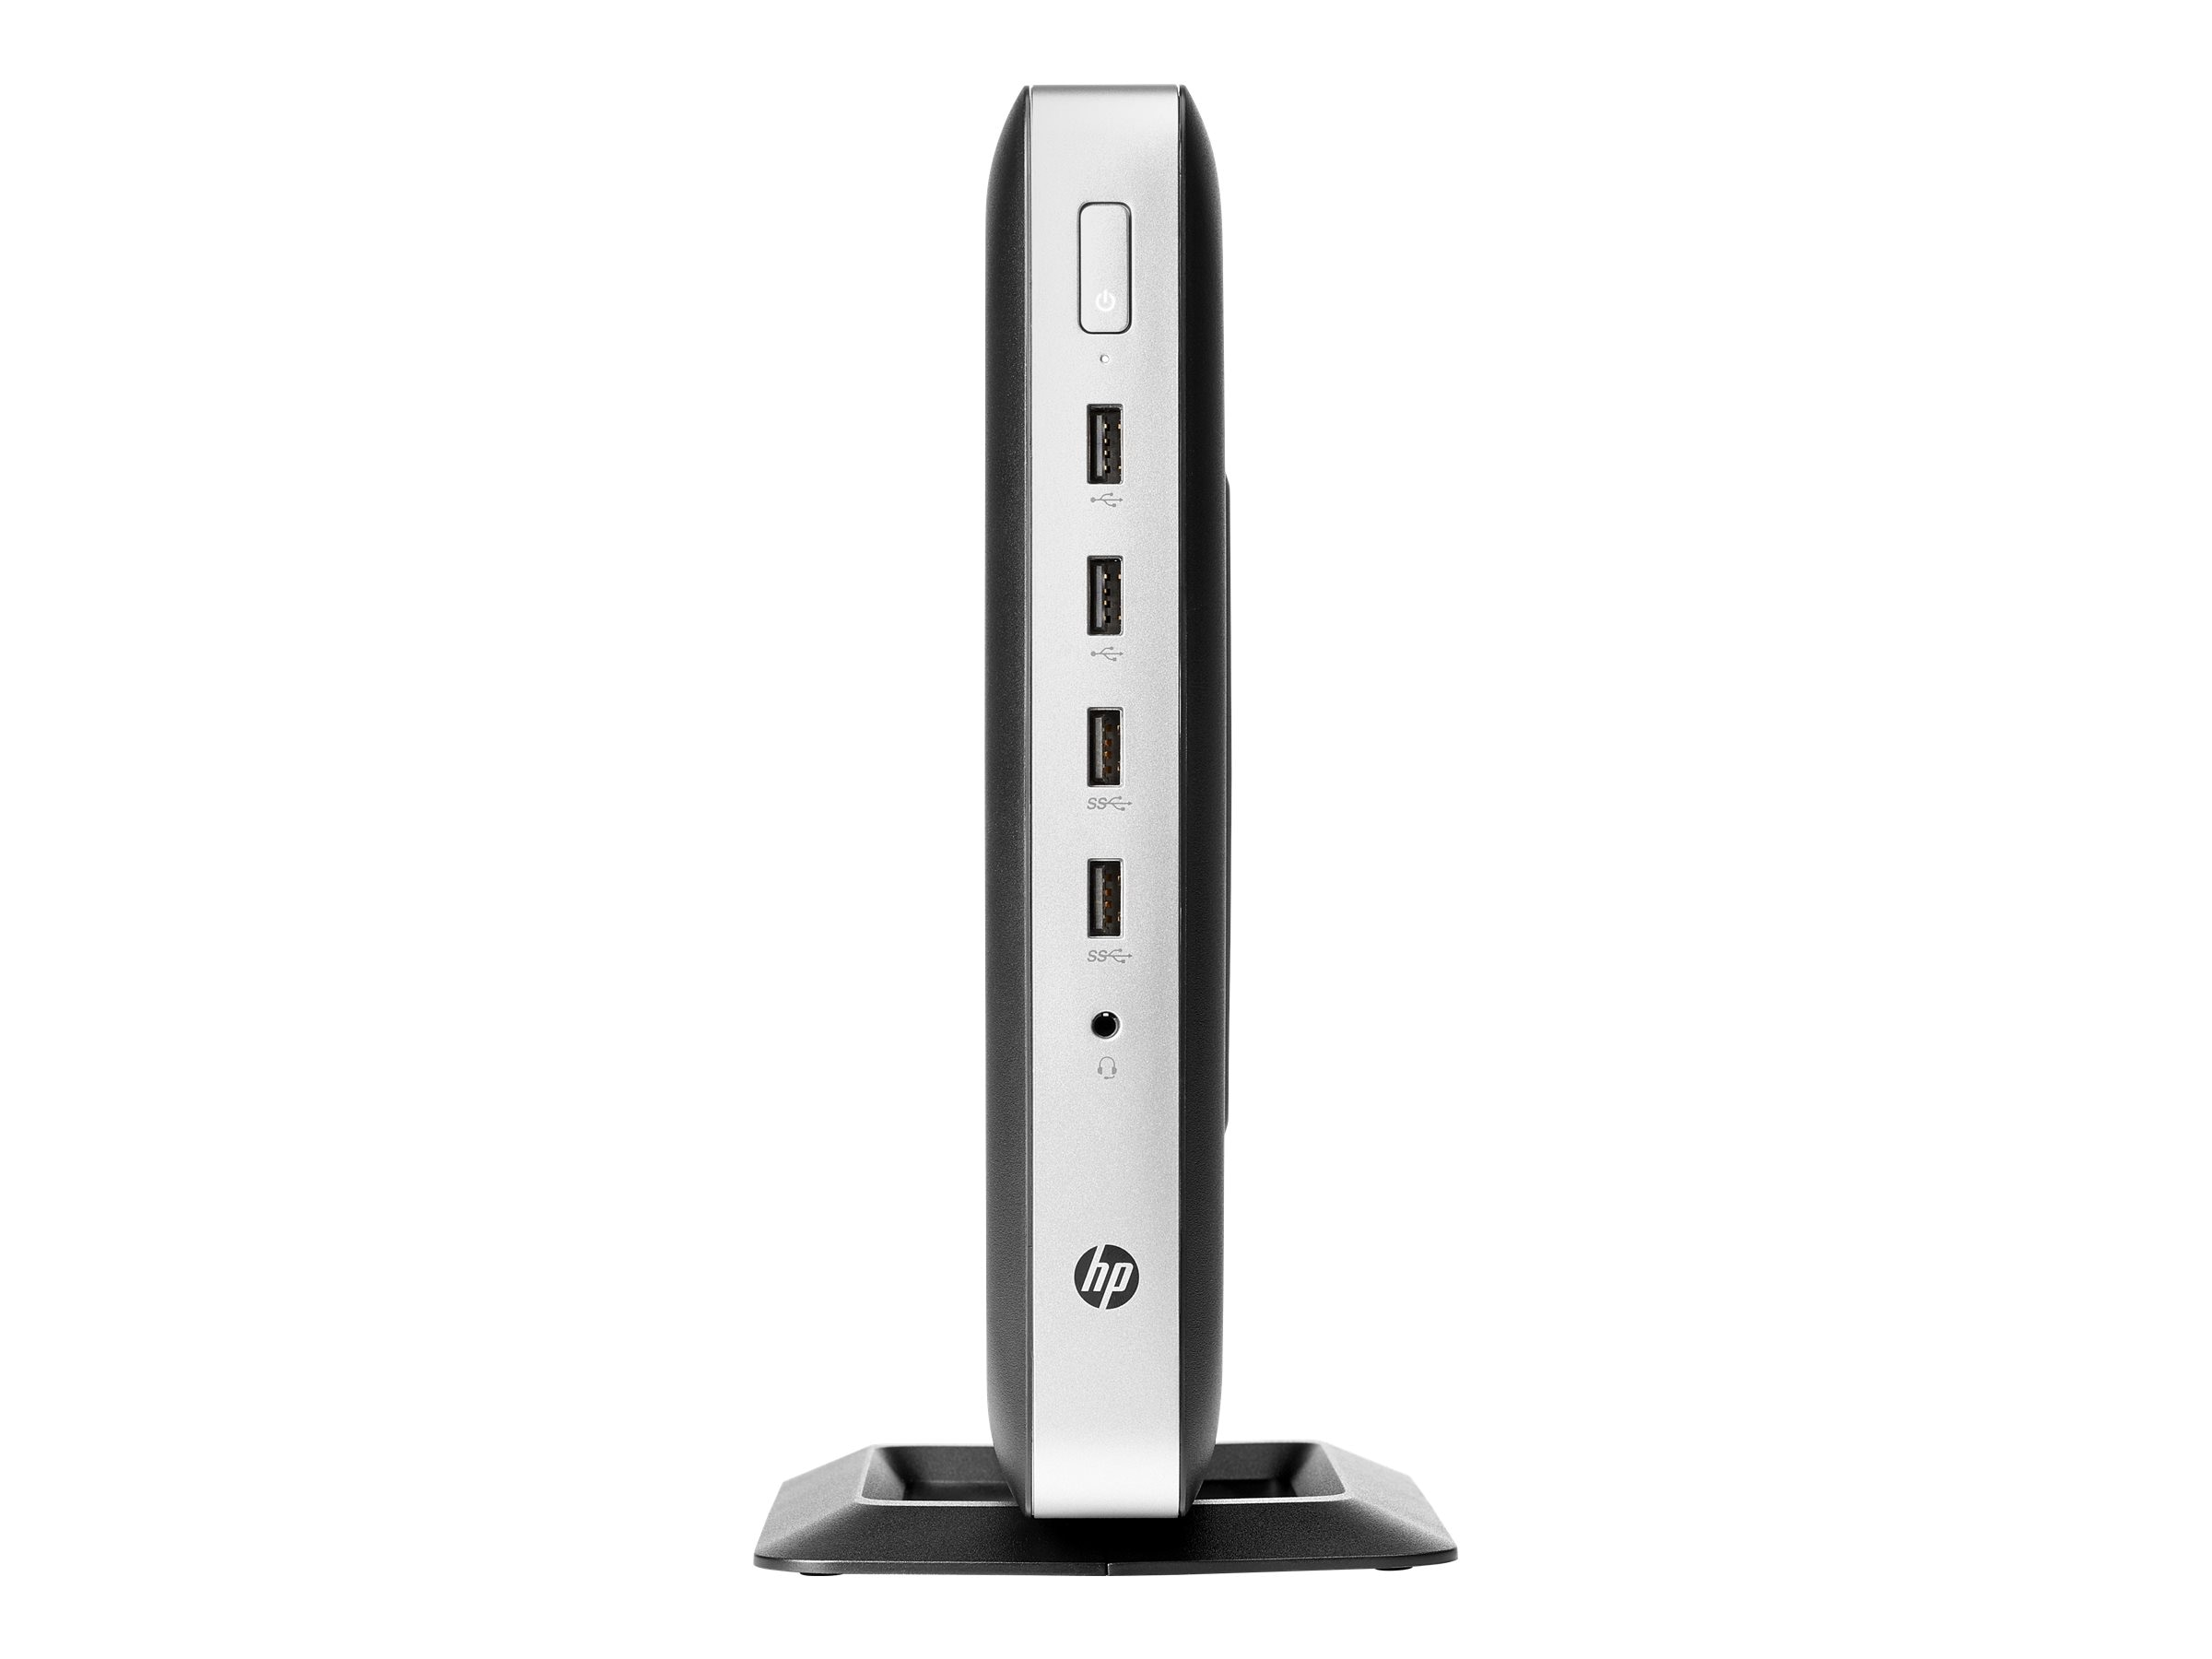 HP t630 Thin Client AMD GX-420GI 2.0GHz 4GB 16GB Flash R6E GbE ac VGA ThinPro, W5Y95UA#ABA